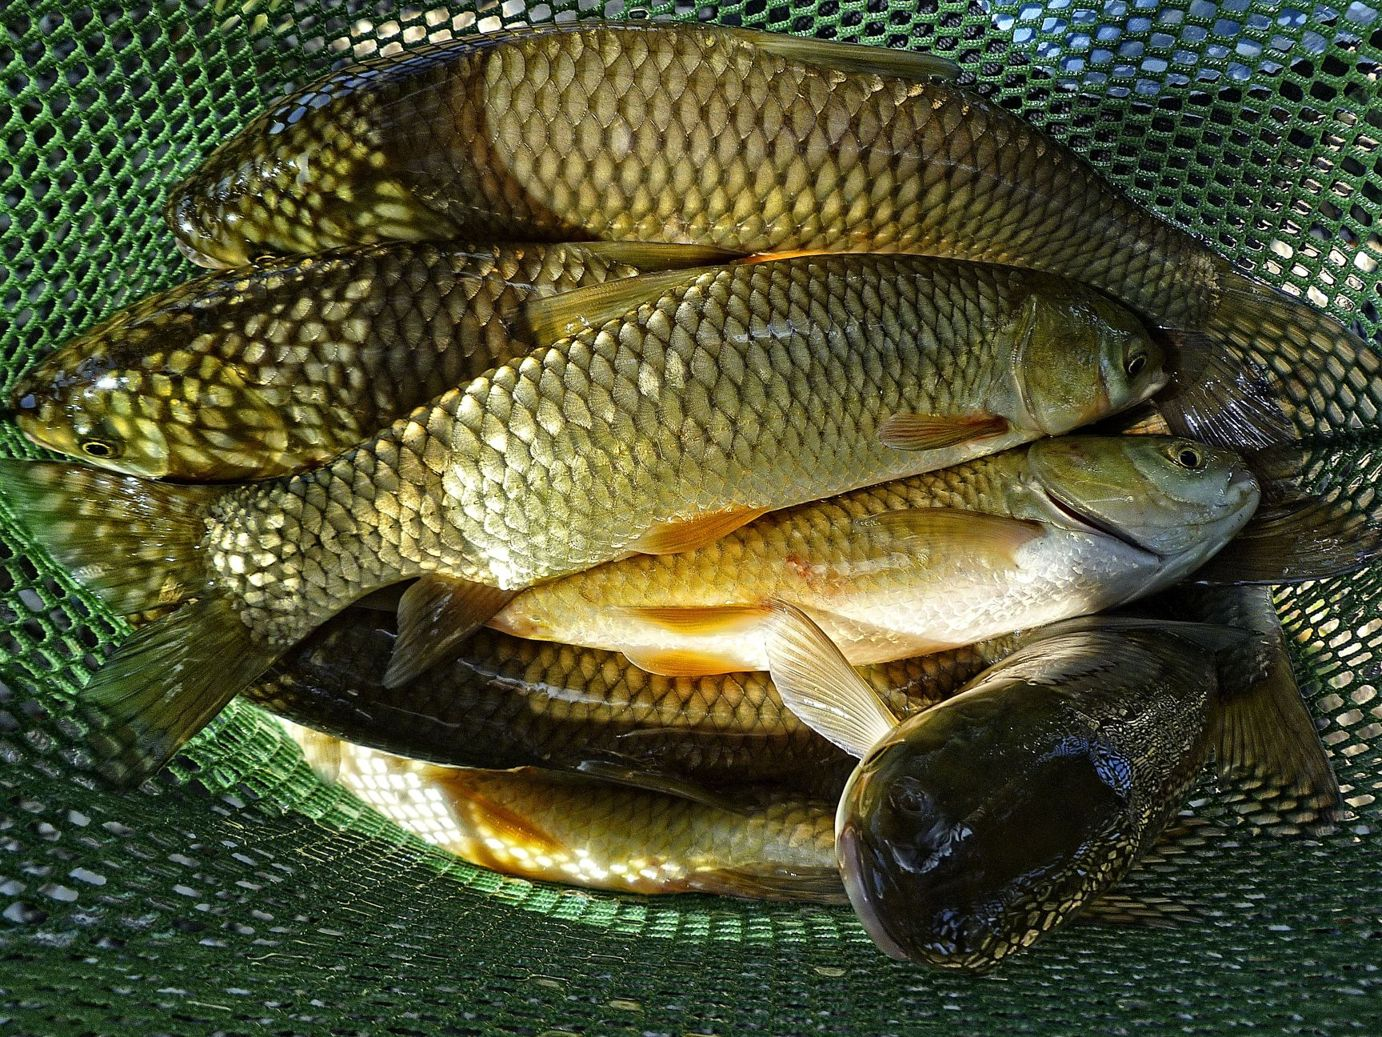 Triploid Grass Carp control aquatic vegetation